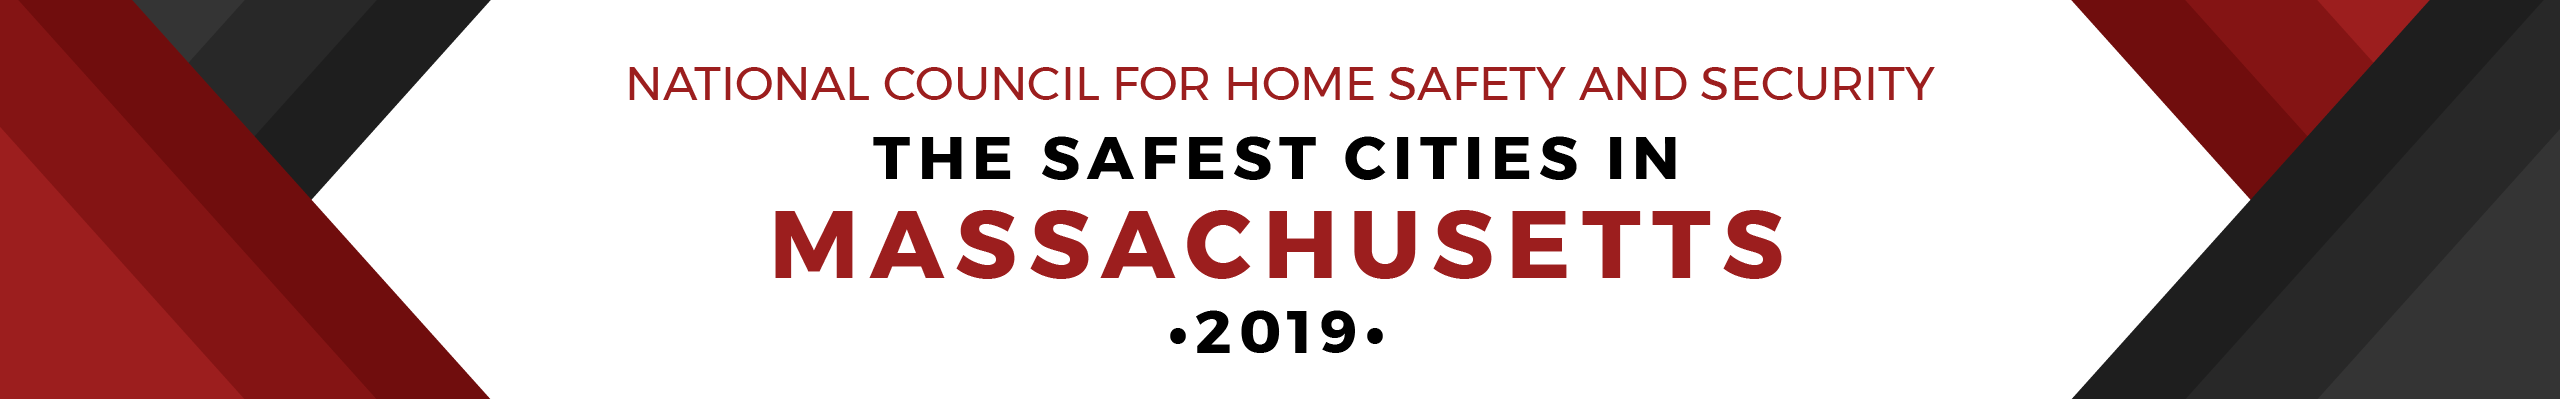 Safest Cities Massachusetts - header